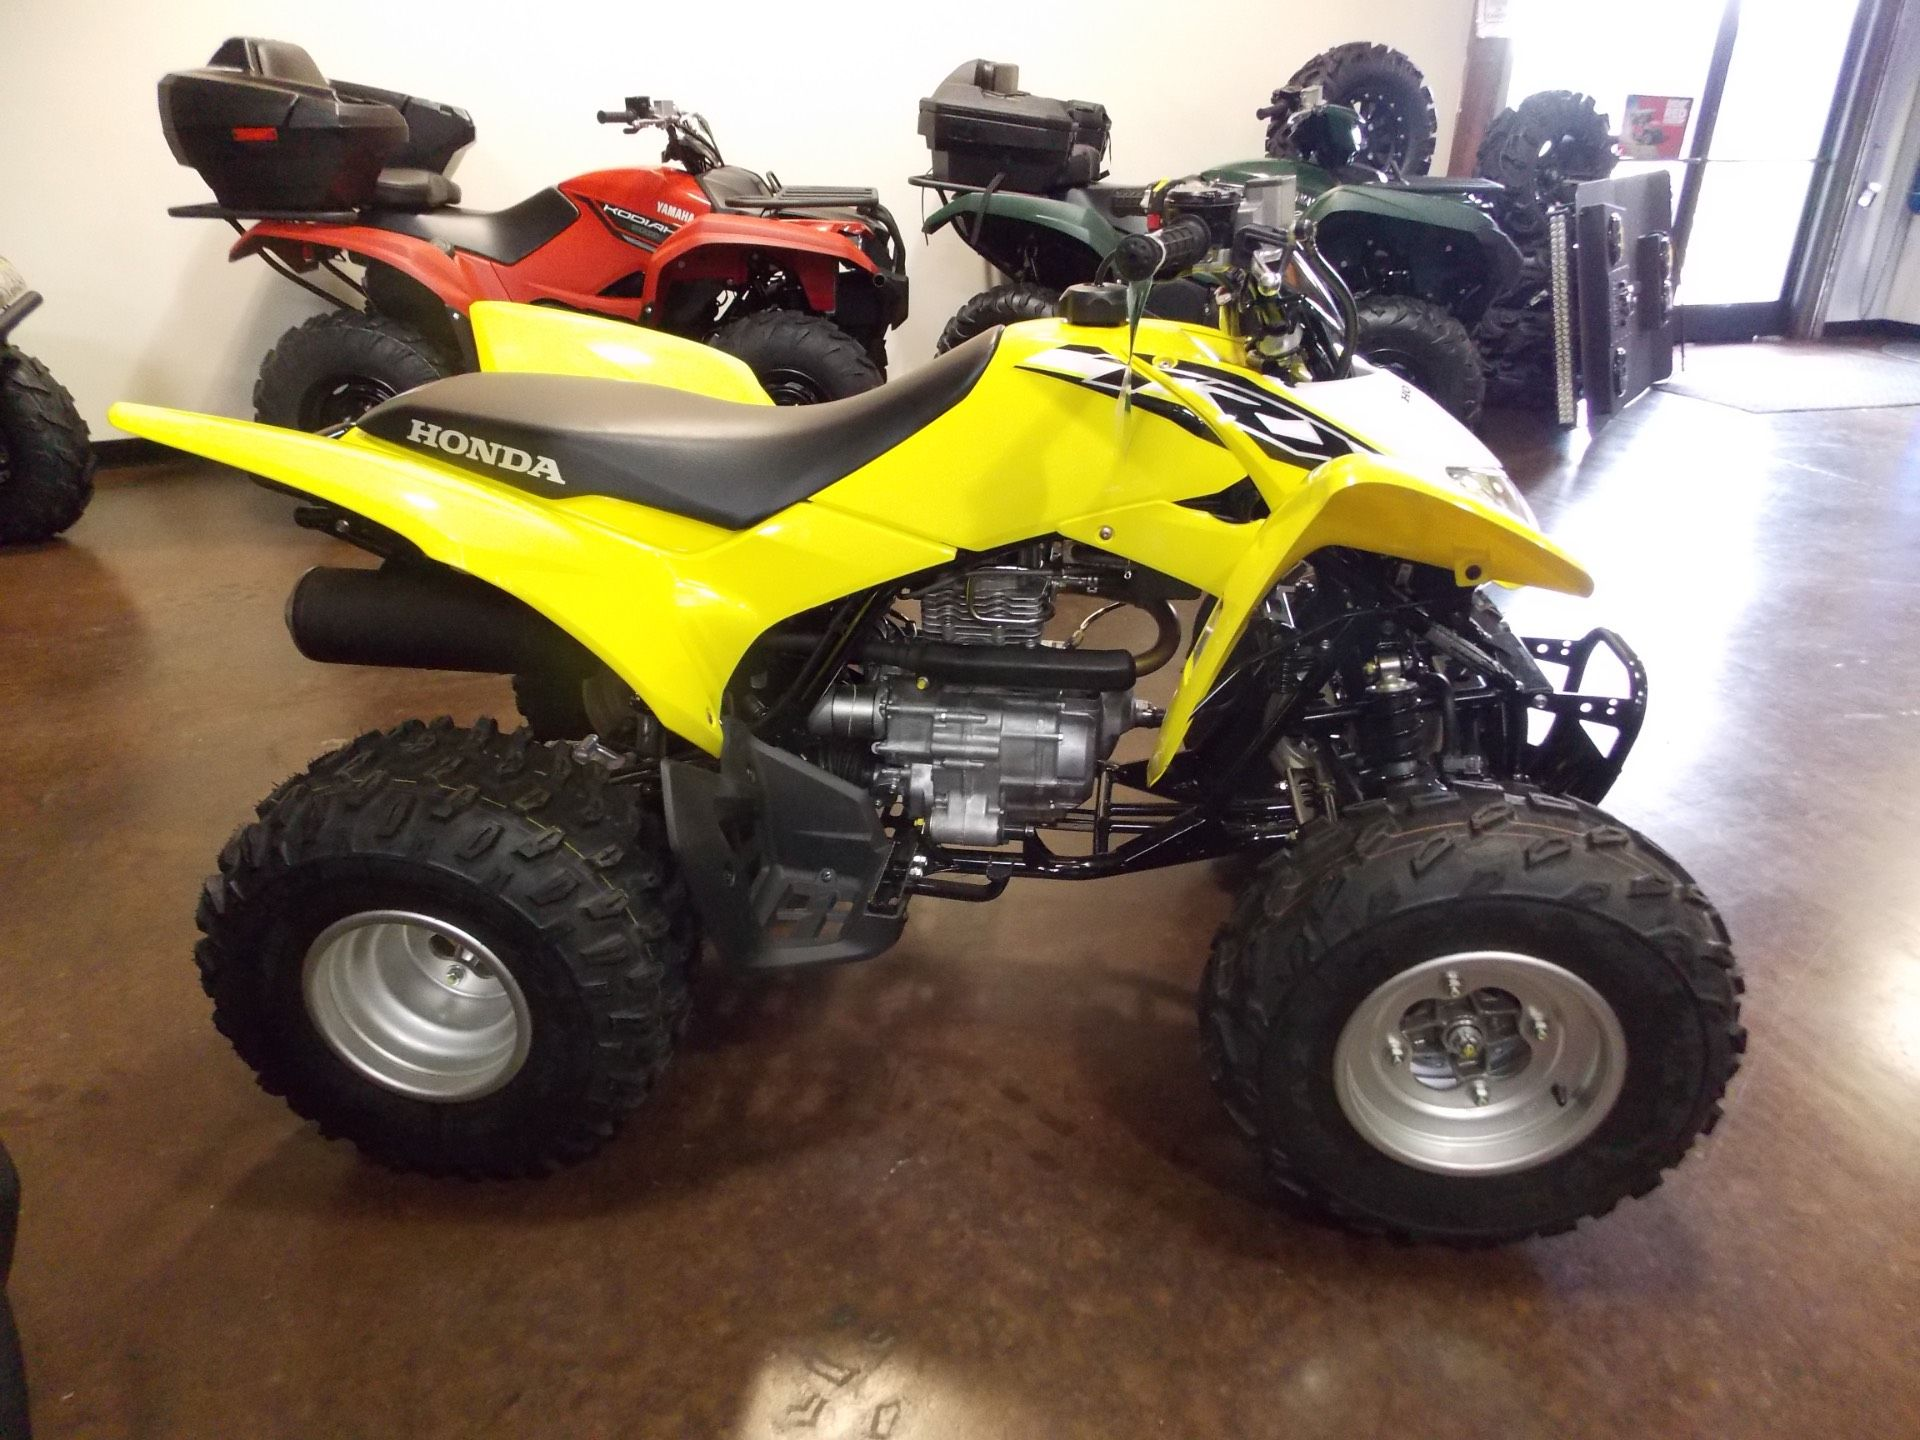 New 2018 Honda Trx250x Atvs In Statesville Nc Stock Number